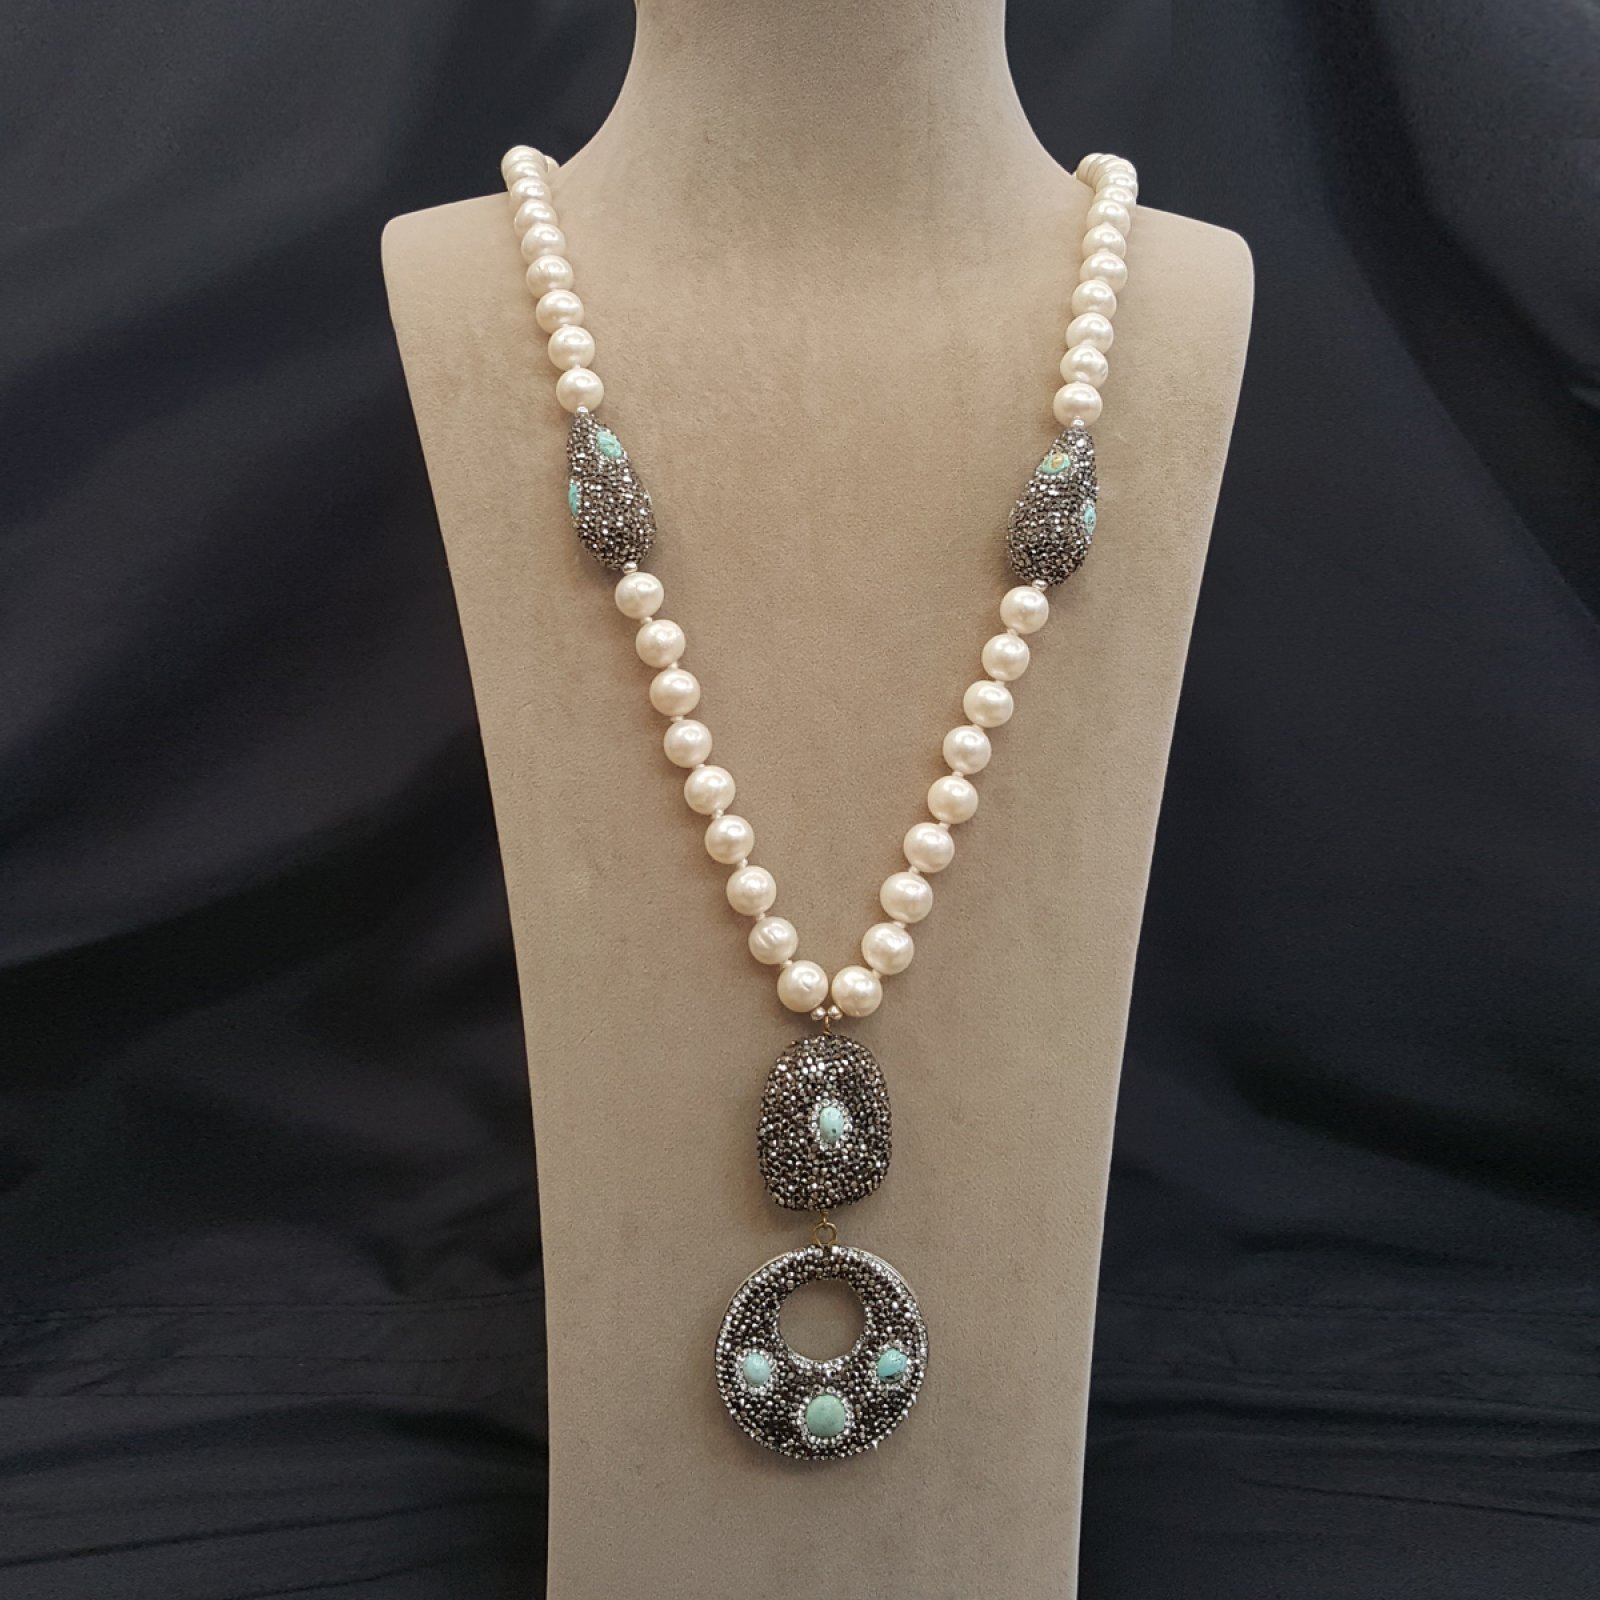 DRN12 - FRESH WATER PEARL NECKLACE DECORATED WITH SWAROVSKI CRYSTALS